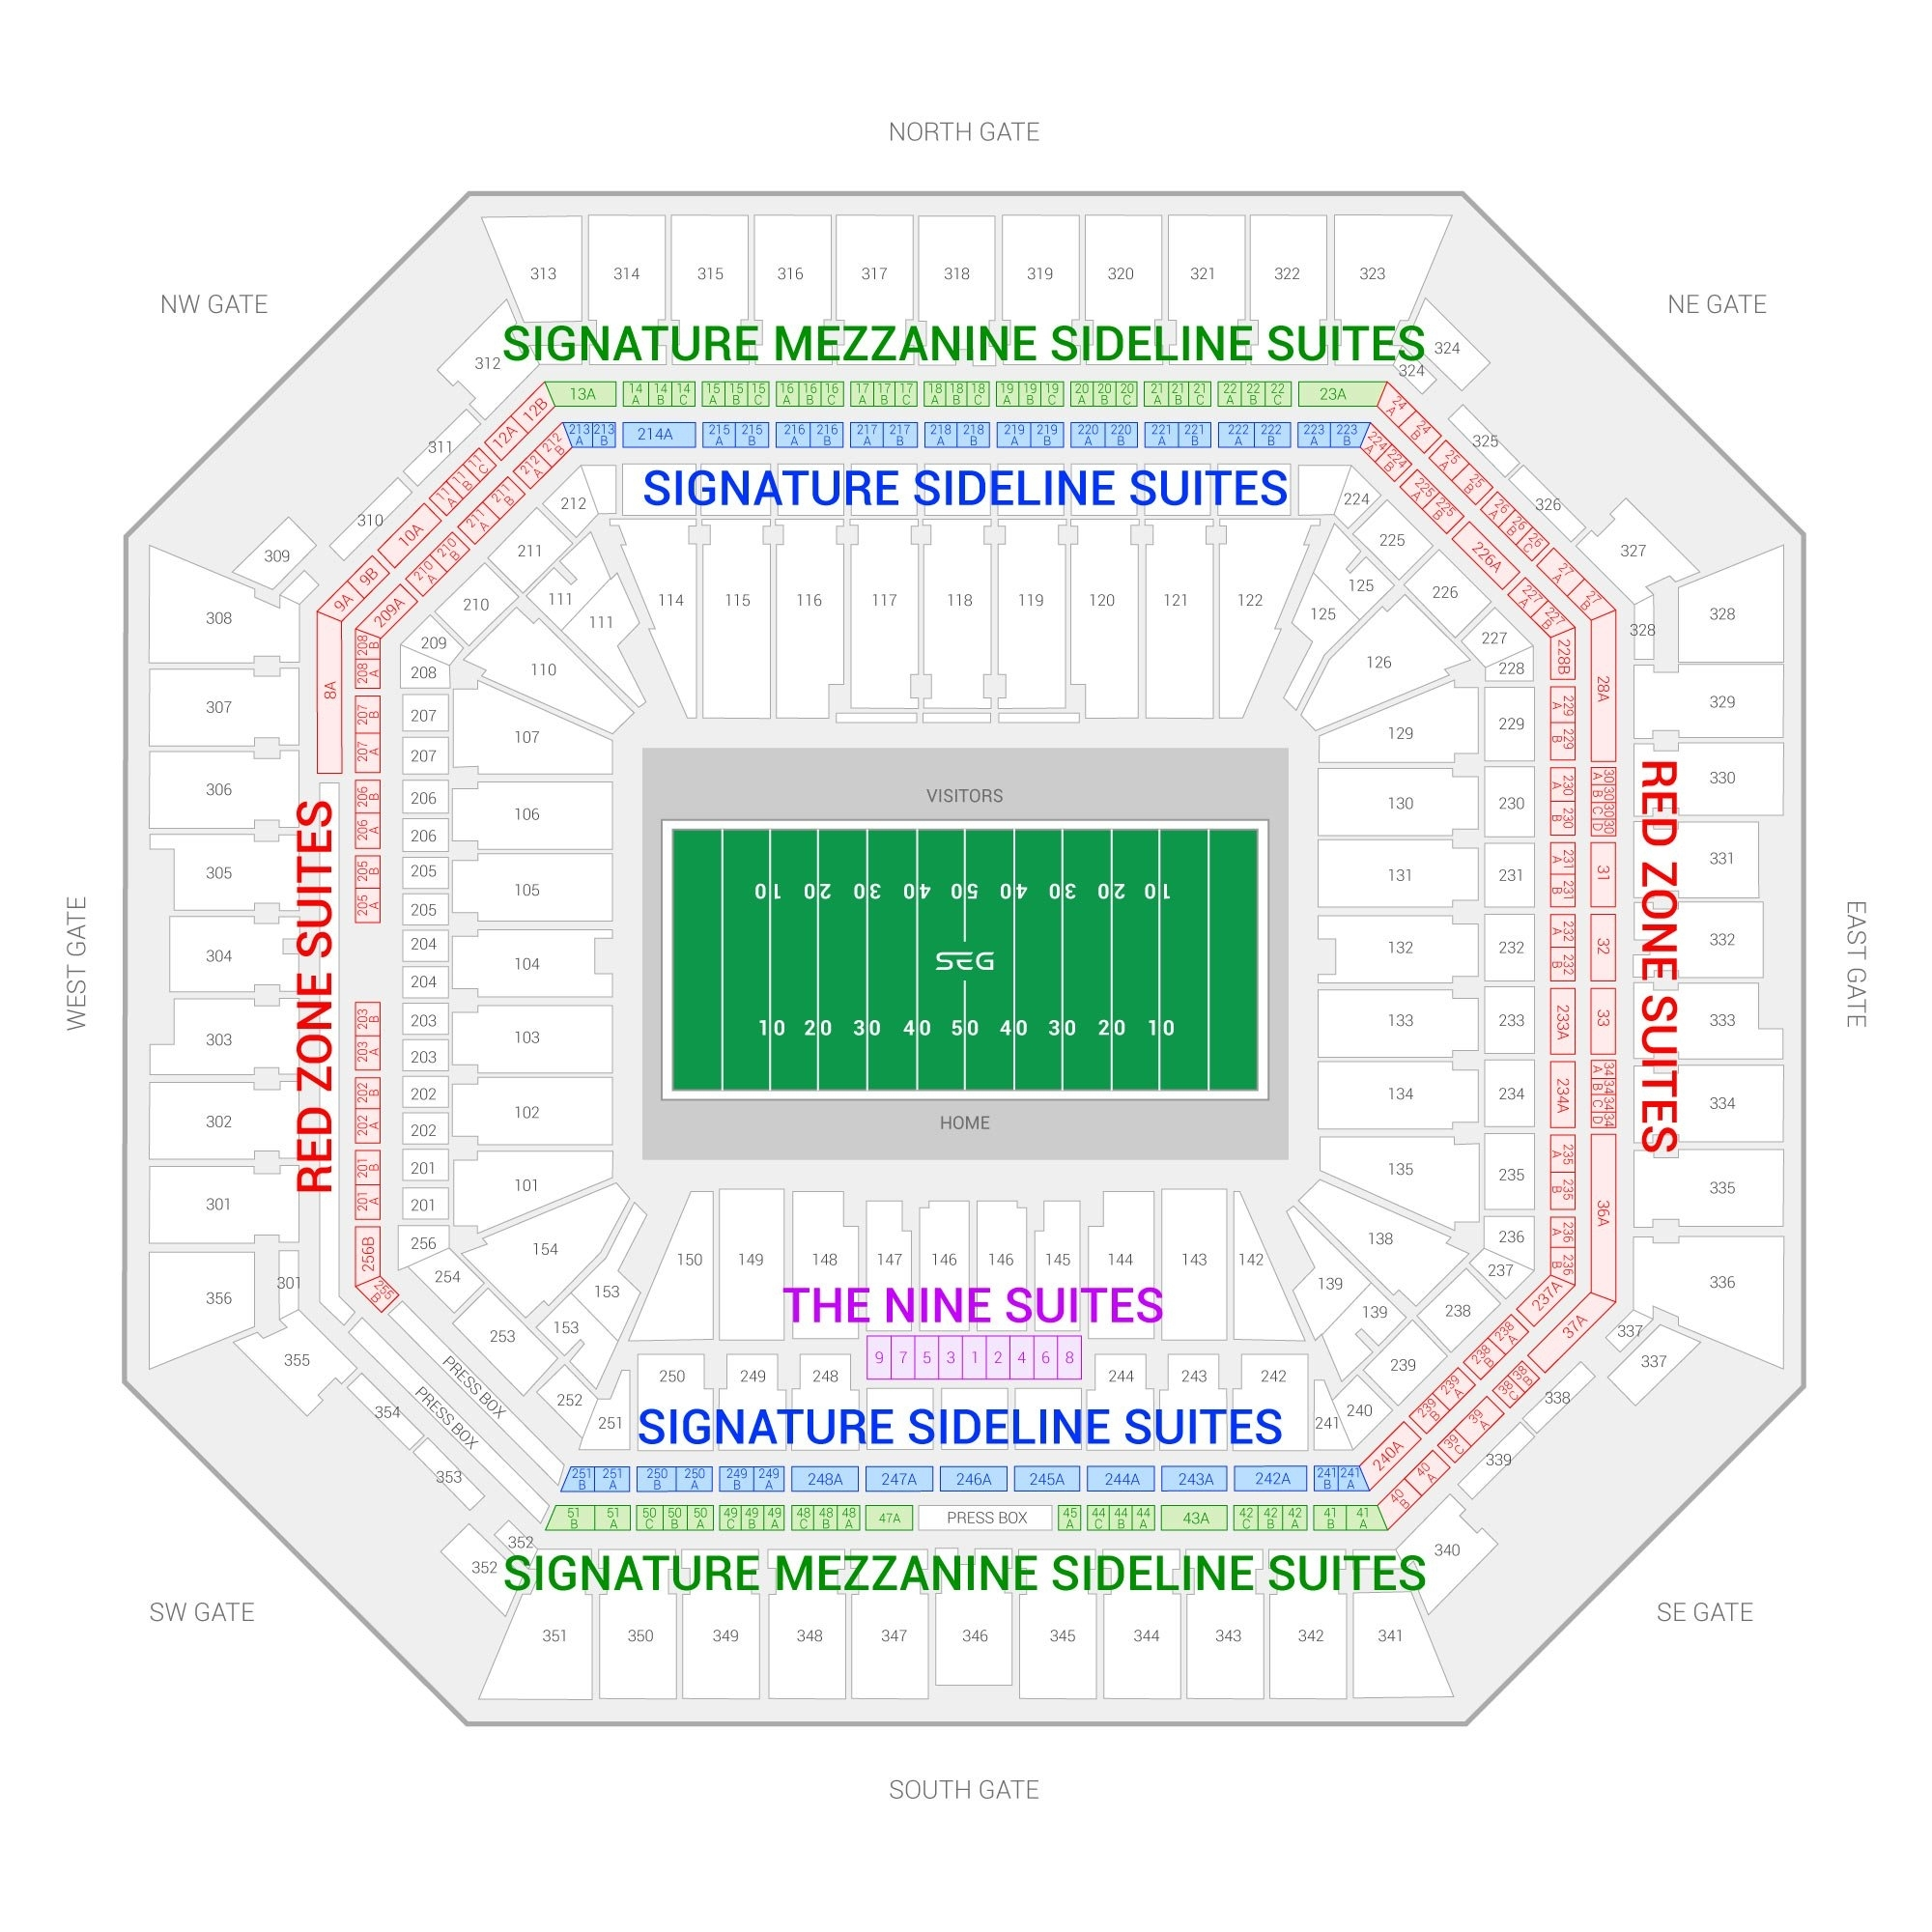 Super Bowl Liv Suite Rentals | Hard Rock Stadium with Super Bowl 2019 Stadium Seating Chart